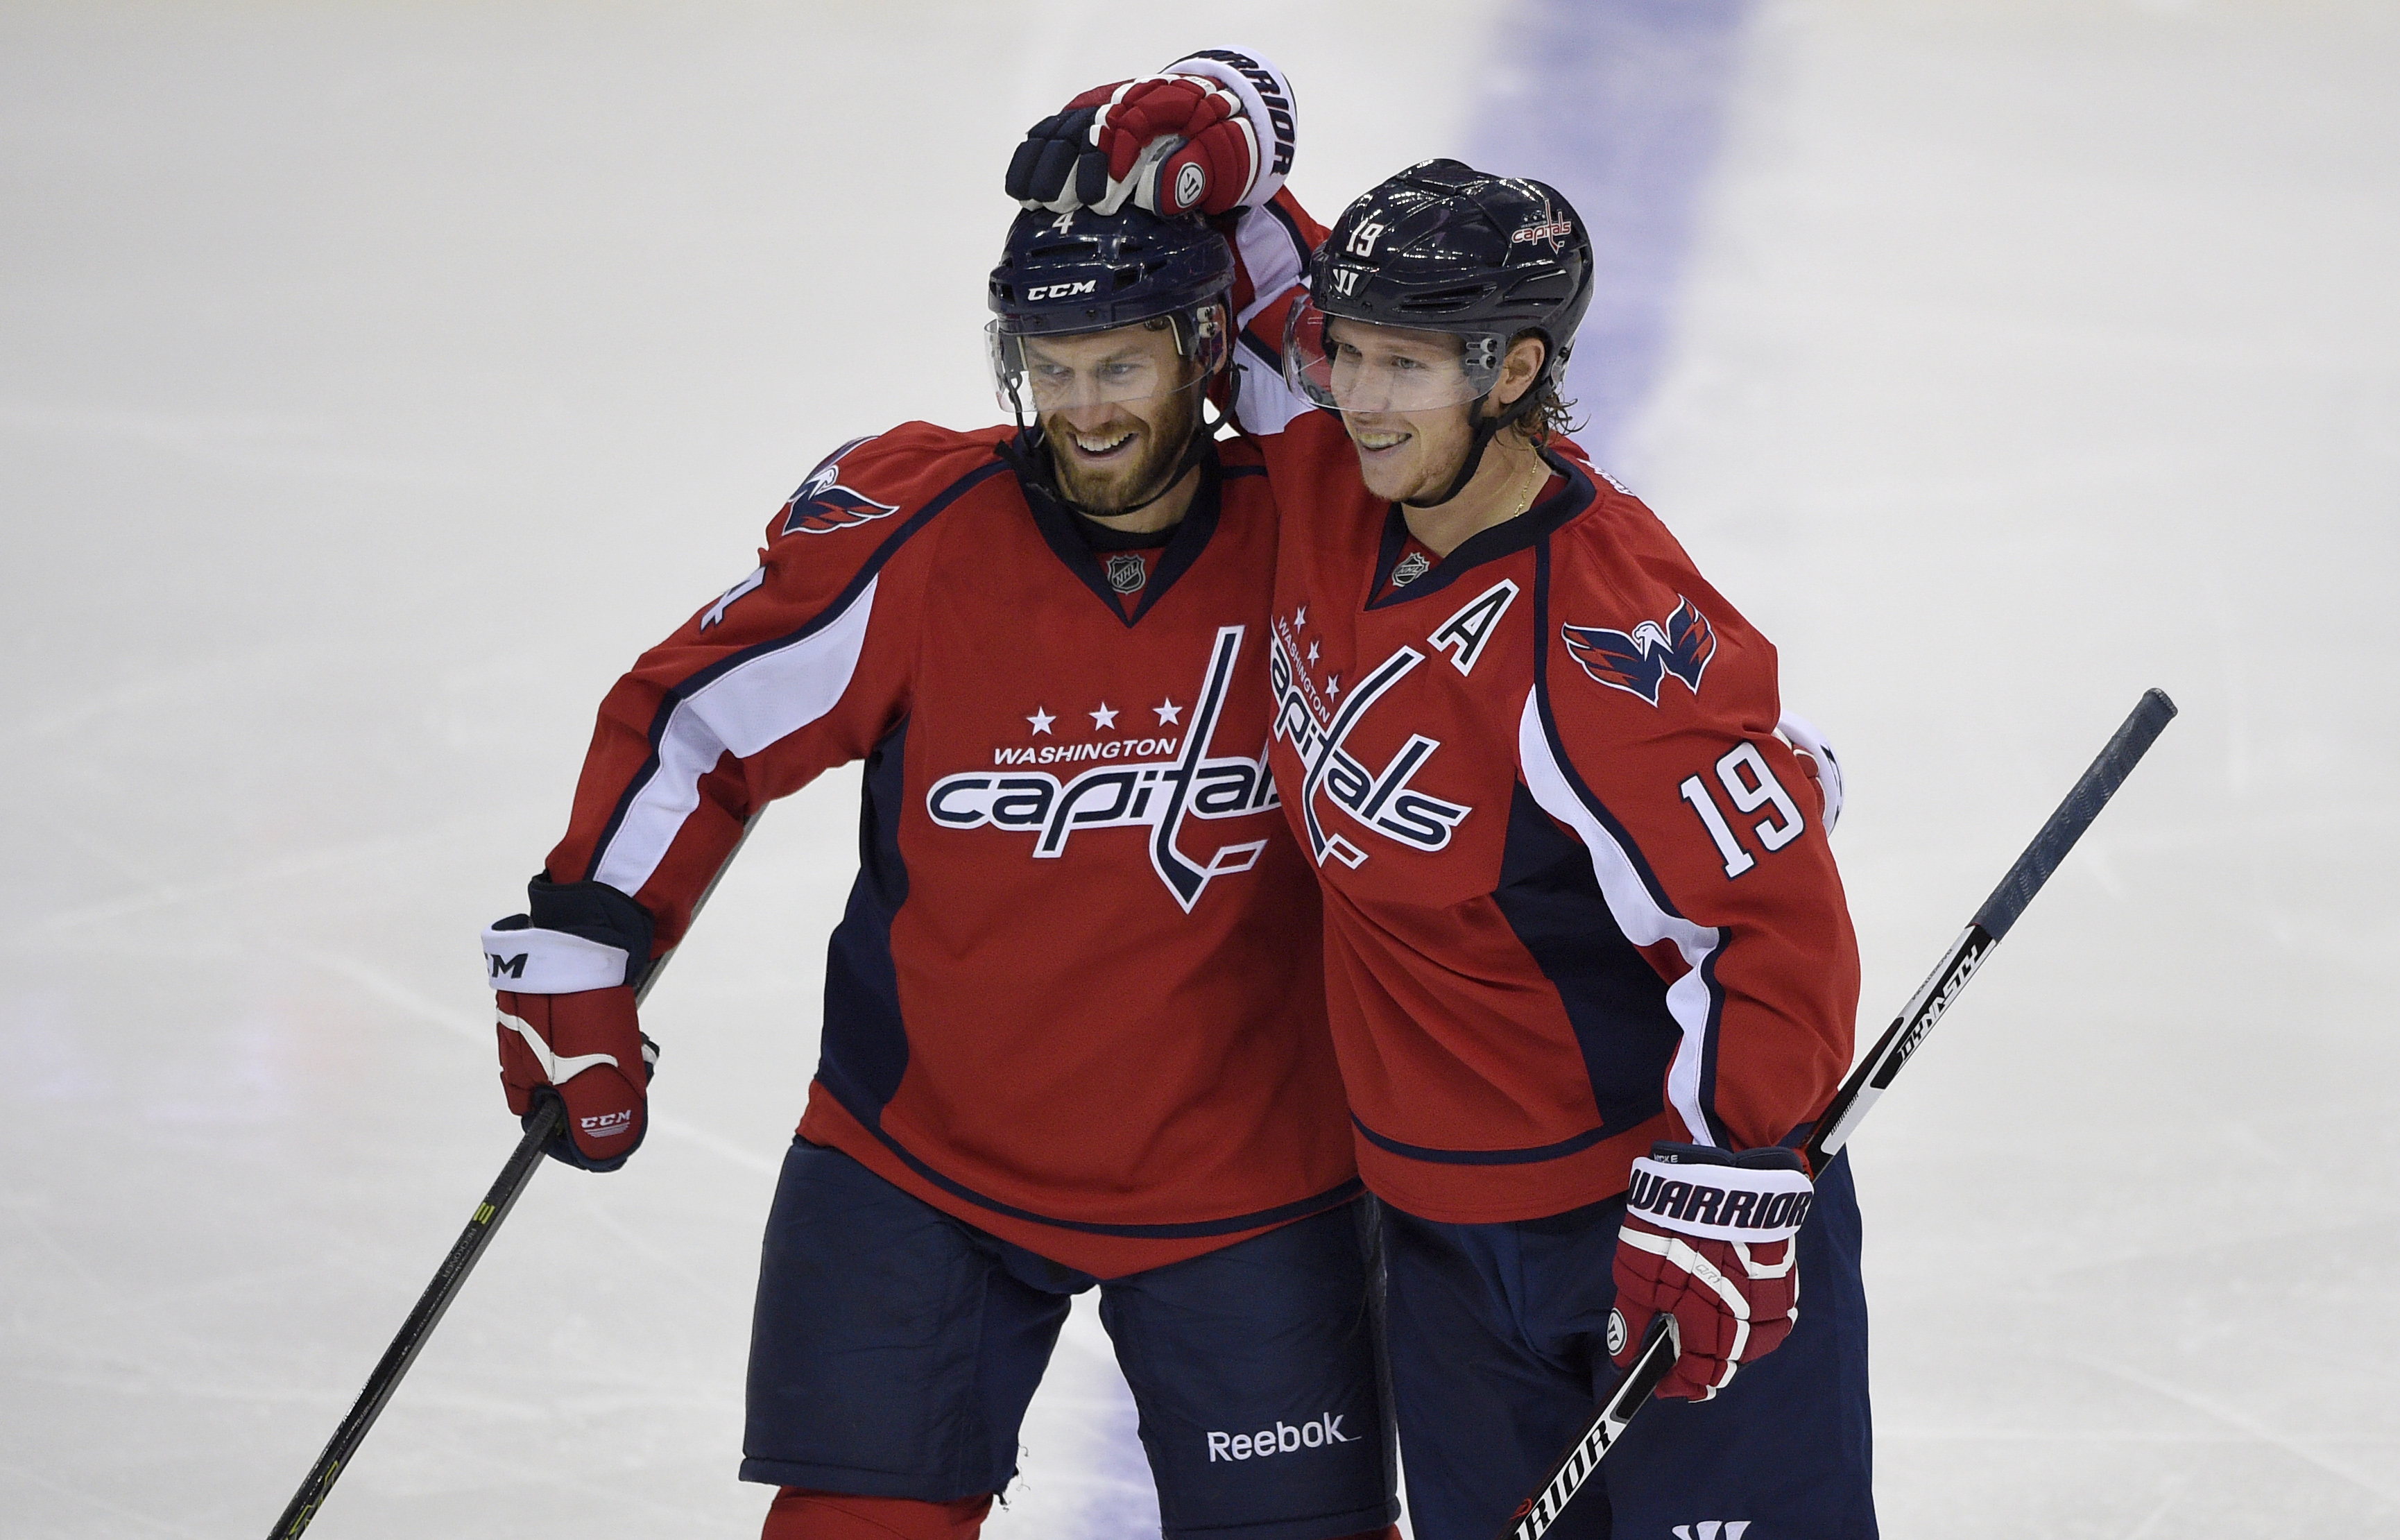 Washington Capitals center Nicklas Backstrom (19), of Sweden, celebrates his goal with Taylor Chorney (4) during the third period of an NHL hockey game against the Carolina Hurricanes, Saturday, Oct. 17, 2015, in Washington. The Capitals won 4-1. (AP Phot